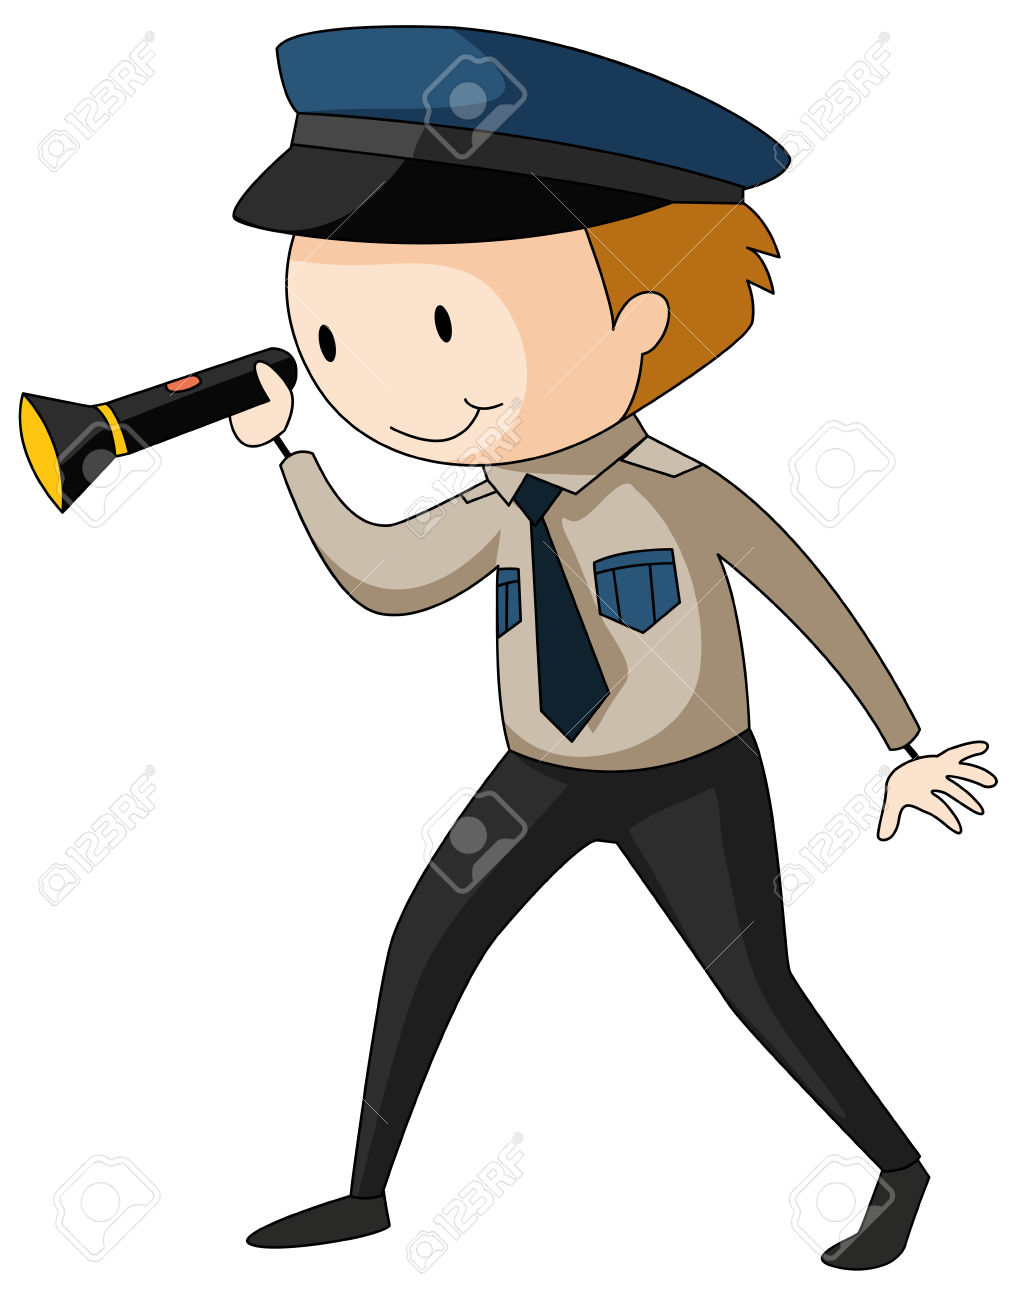 Security guard clipart jpg library stock Security Guard Holding Flashlight Illustration Royalty Free ... jpg library stock